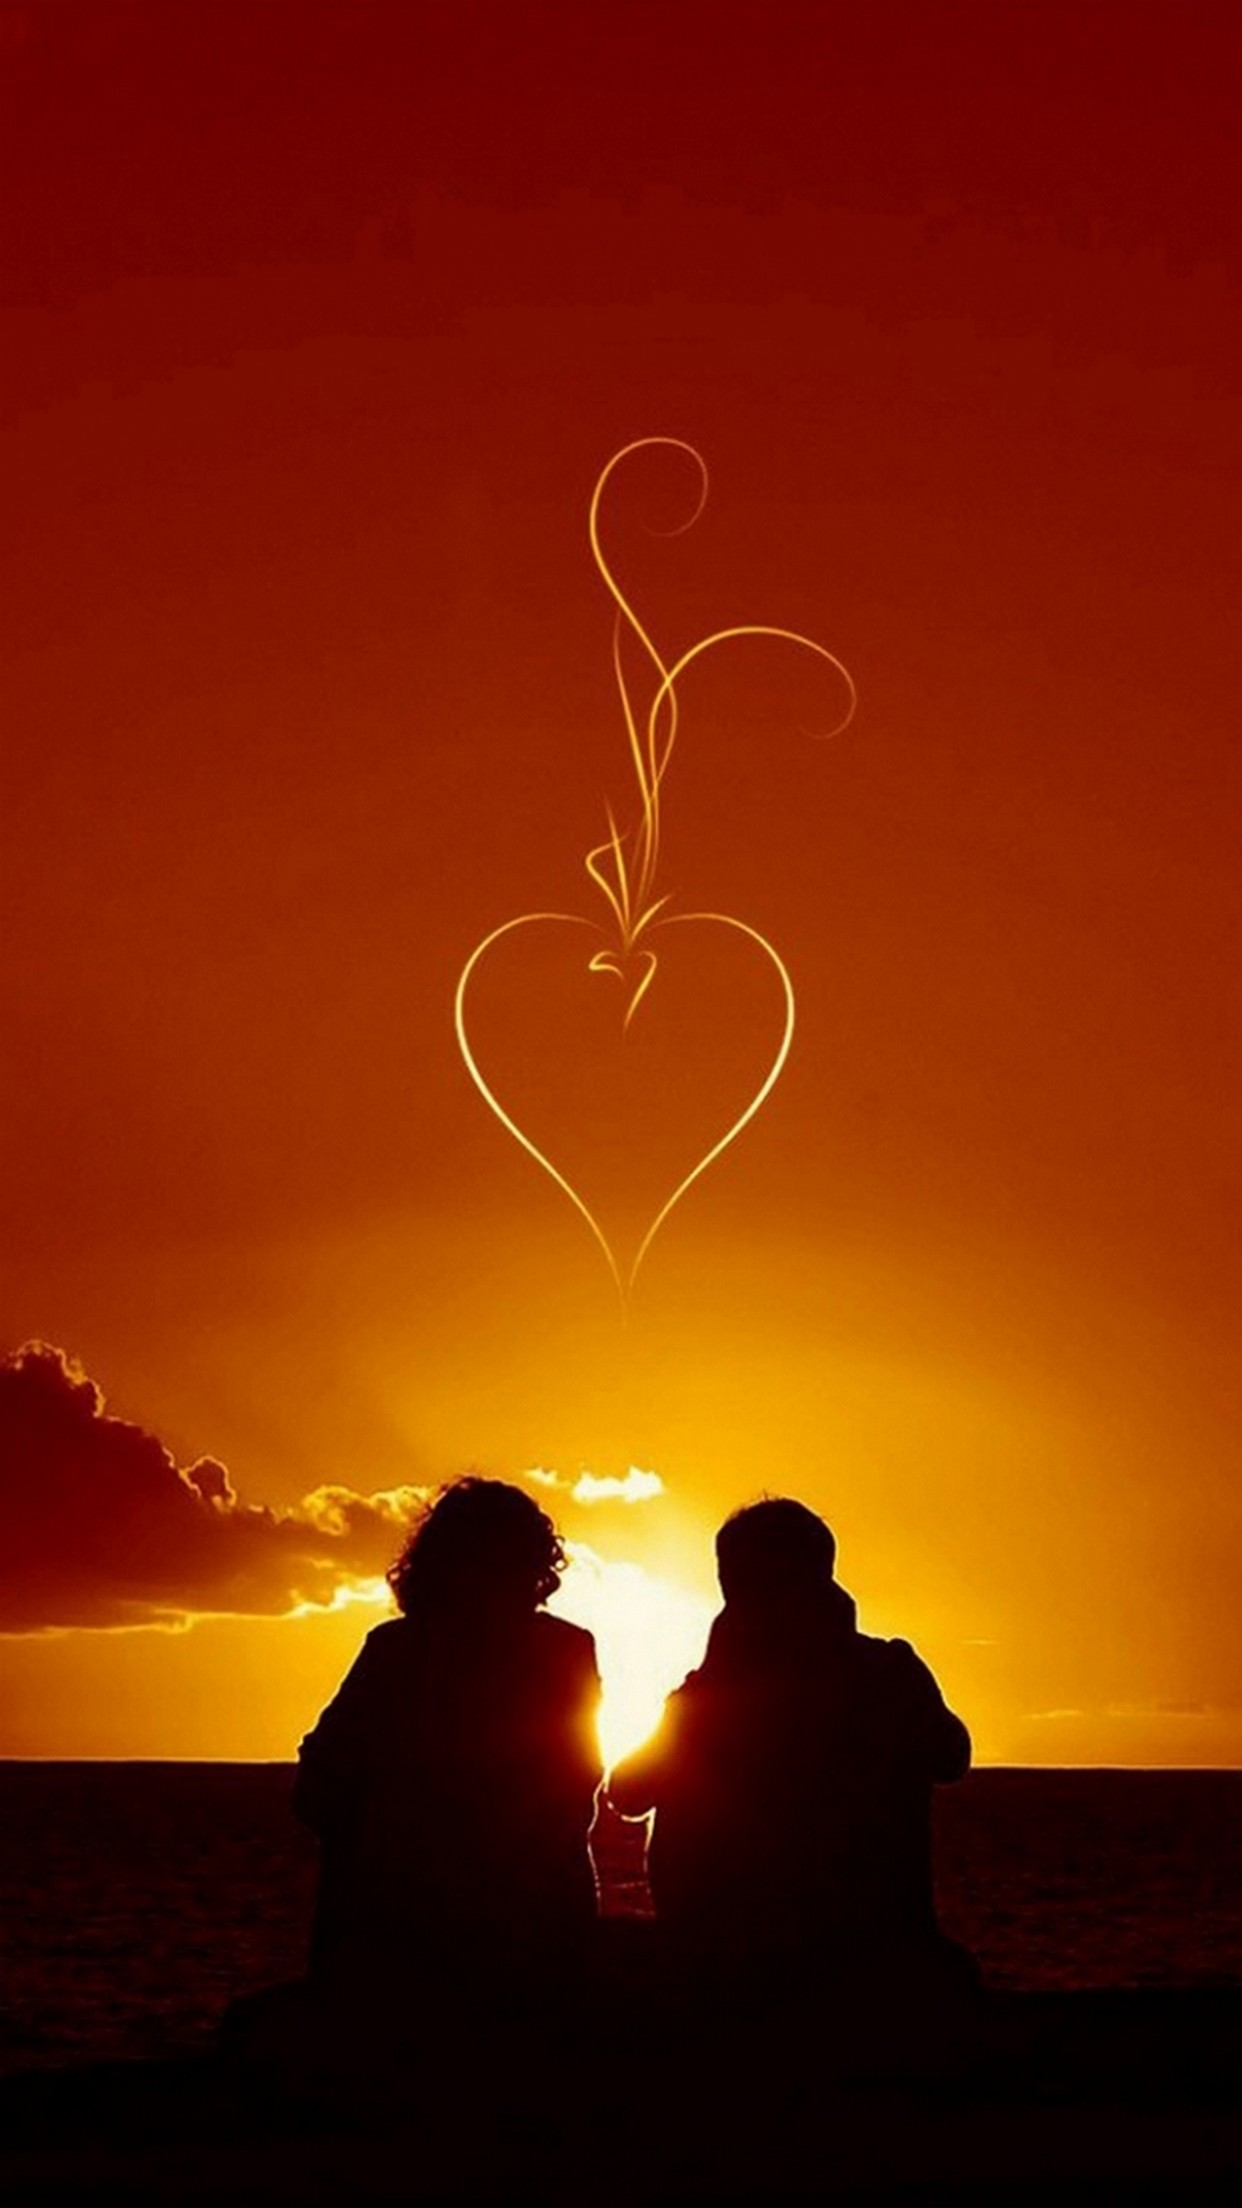 Love Wallpapers Images : Love Wallpapers Images ??